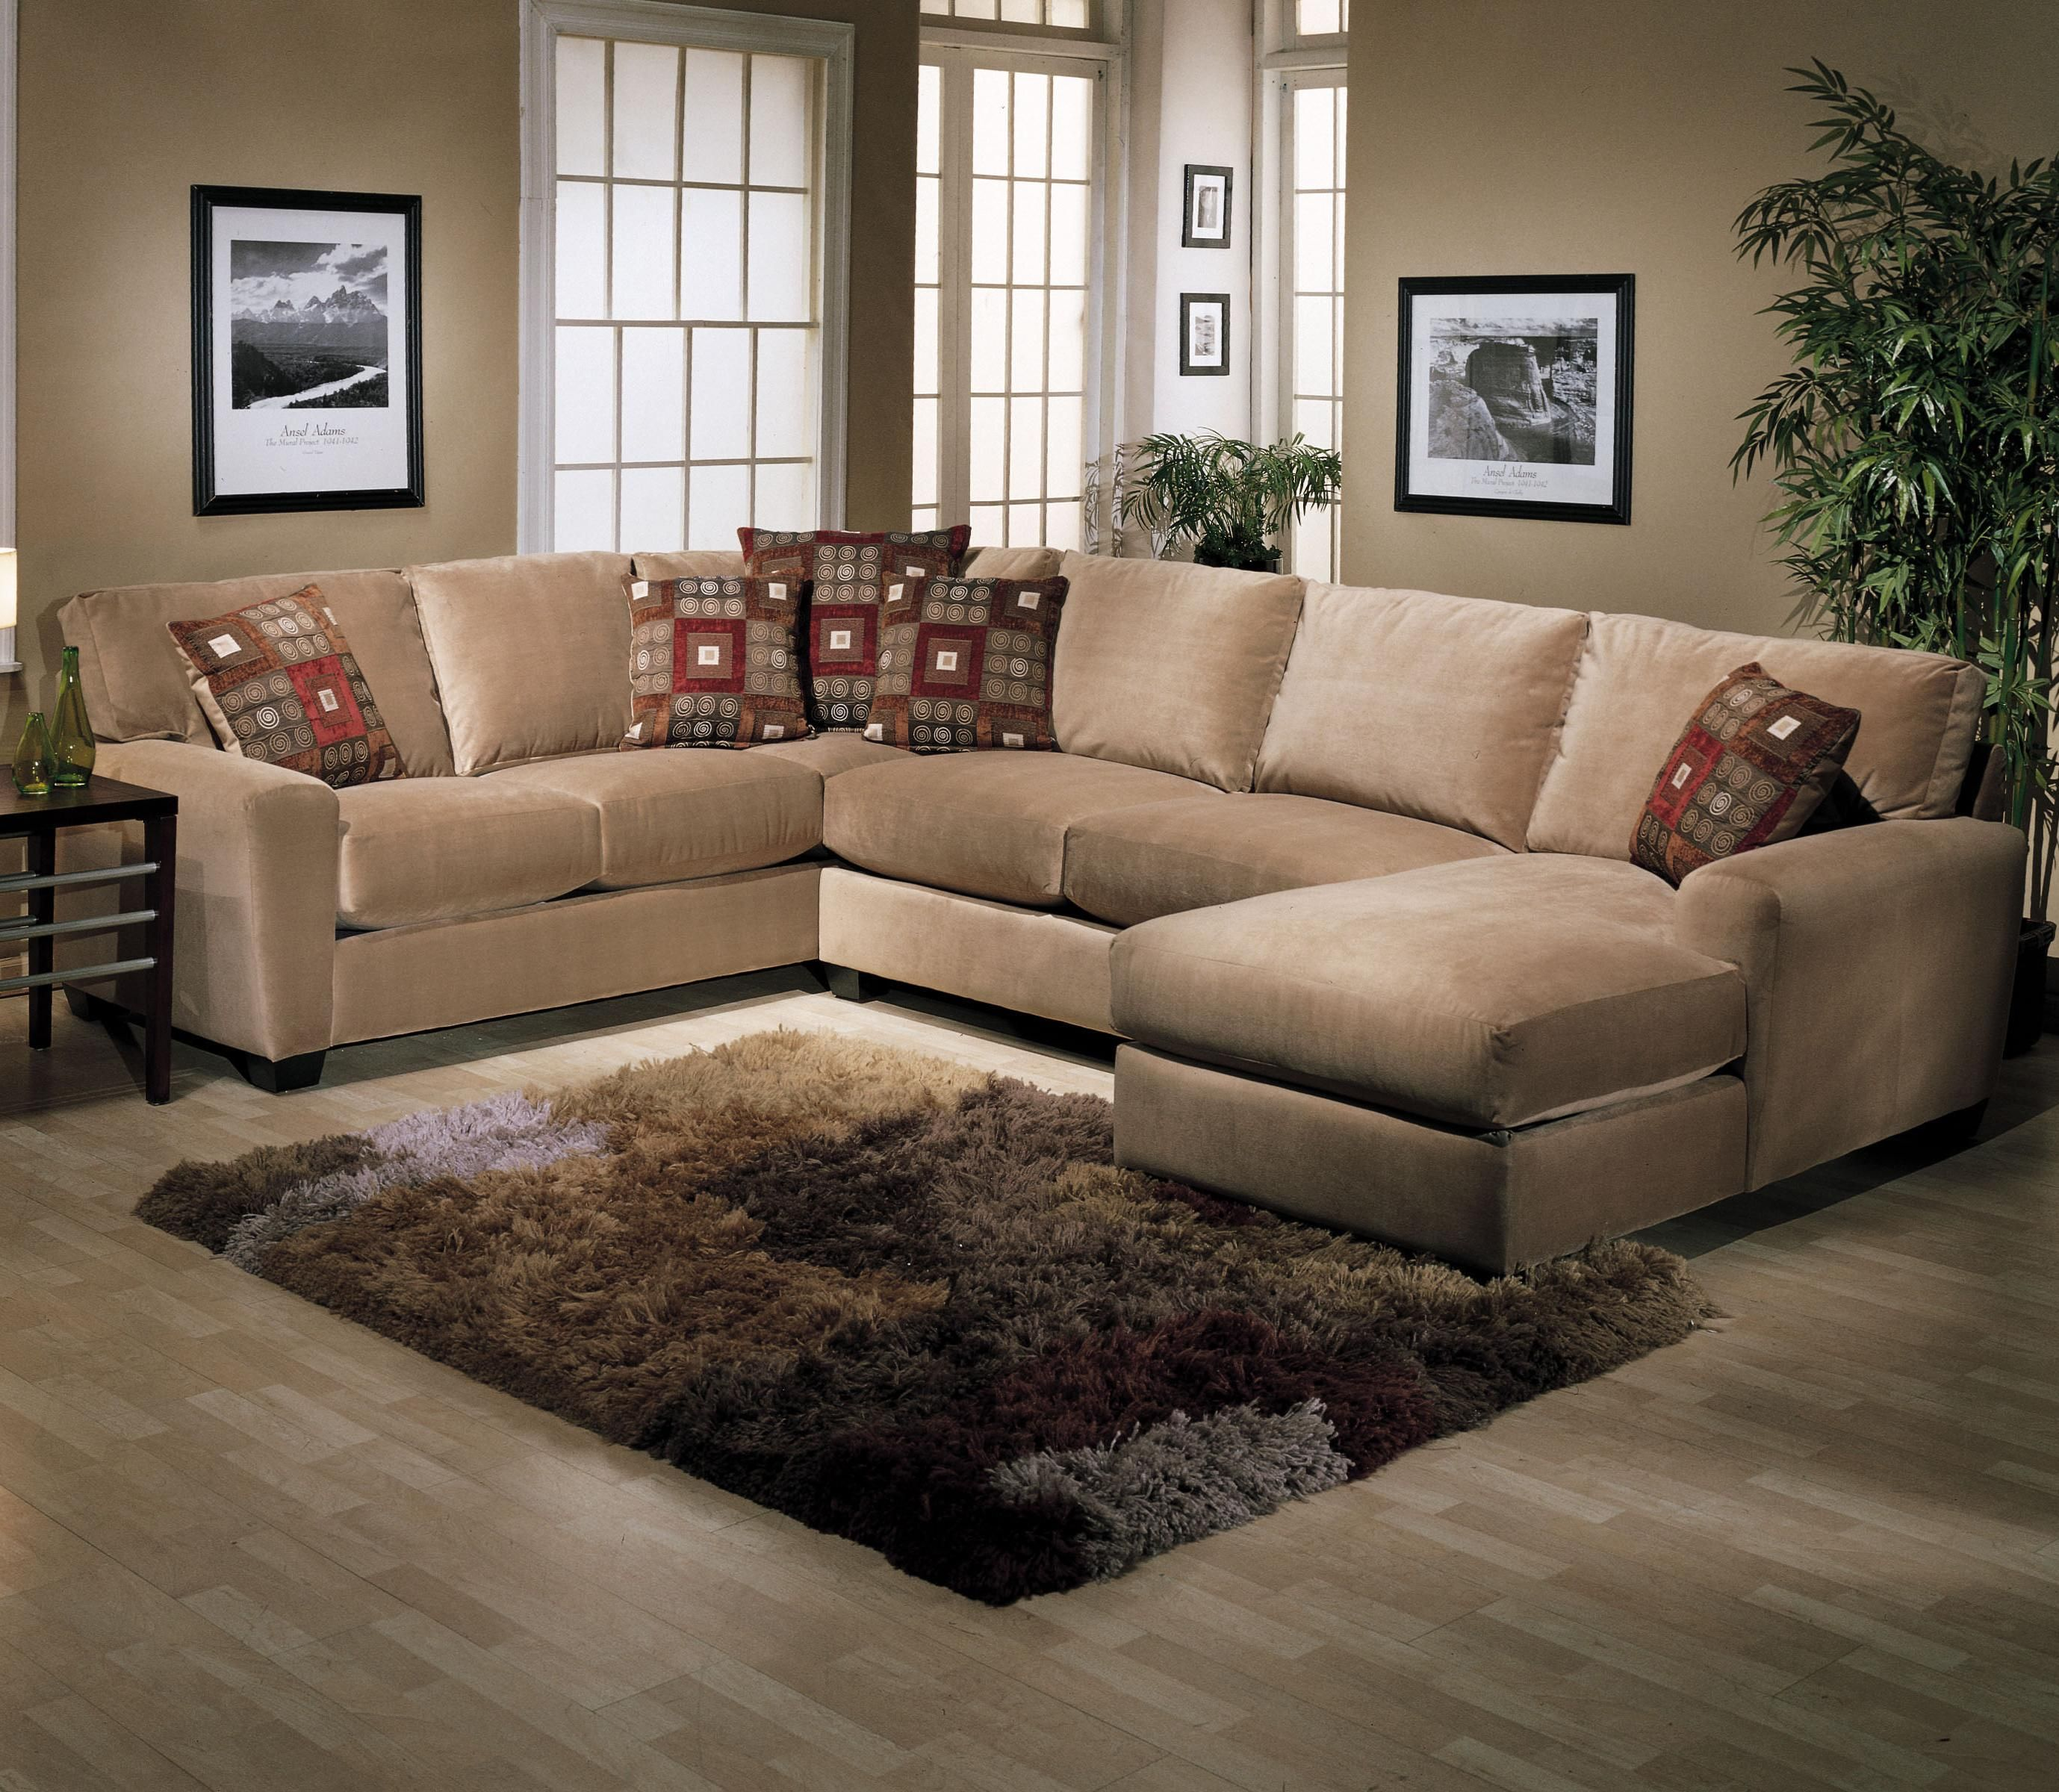 Beck s Furniture Benson L Shape Sectional with Chaise Lounge by